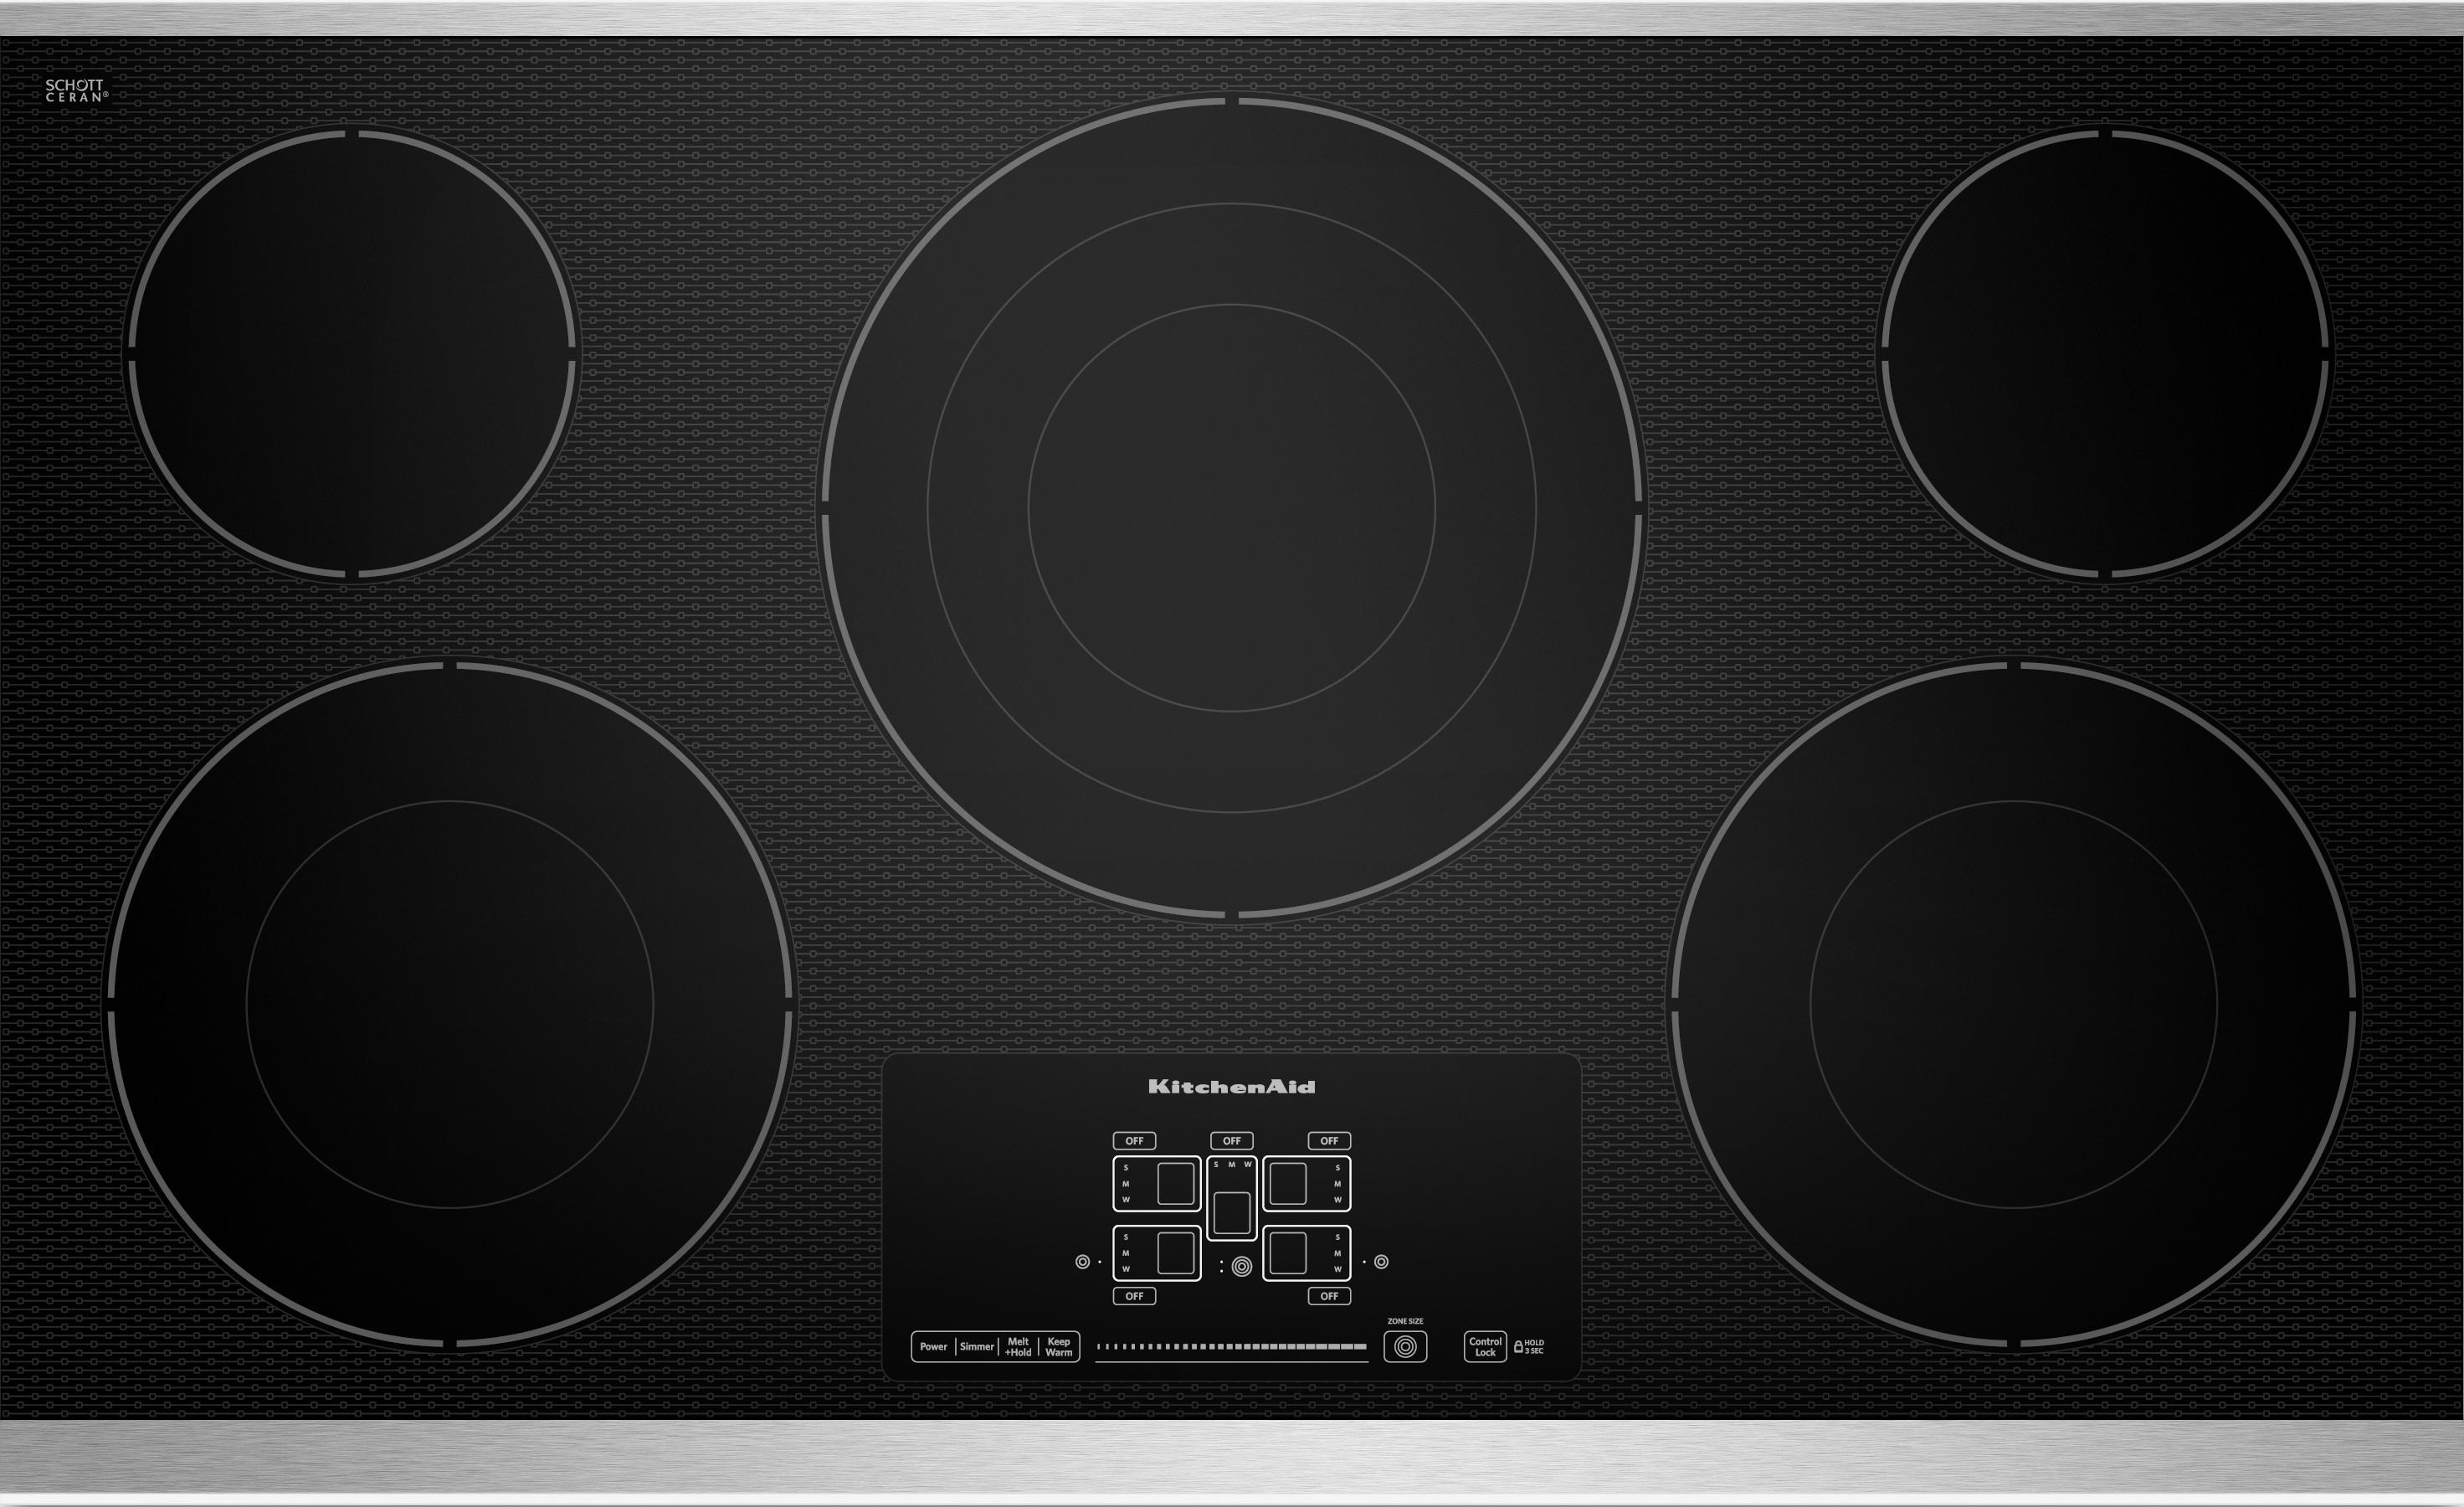 KitchenAid Electric Cooktops   Kitchenaid 30